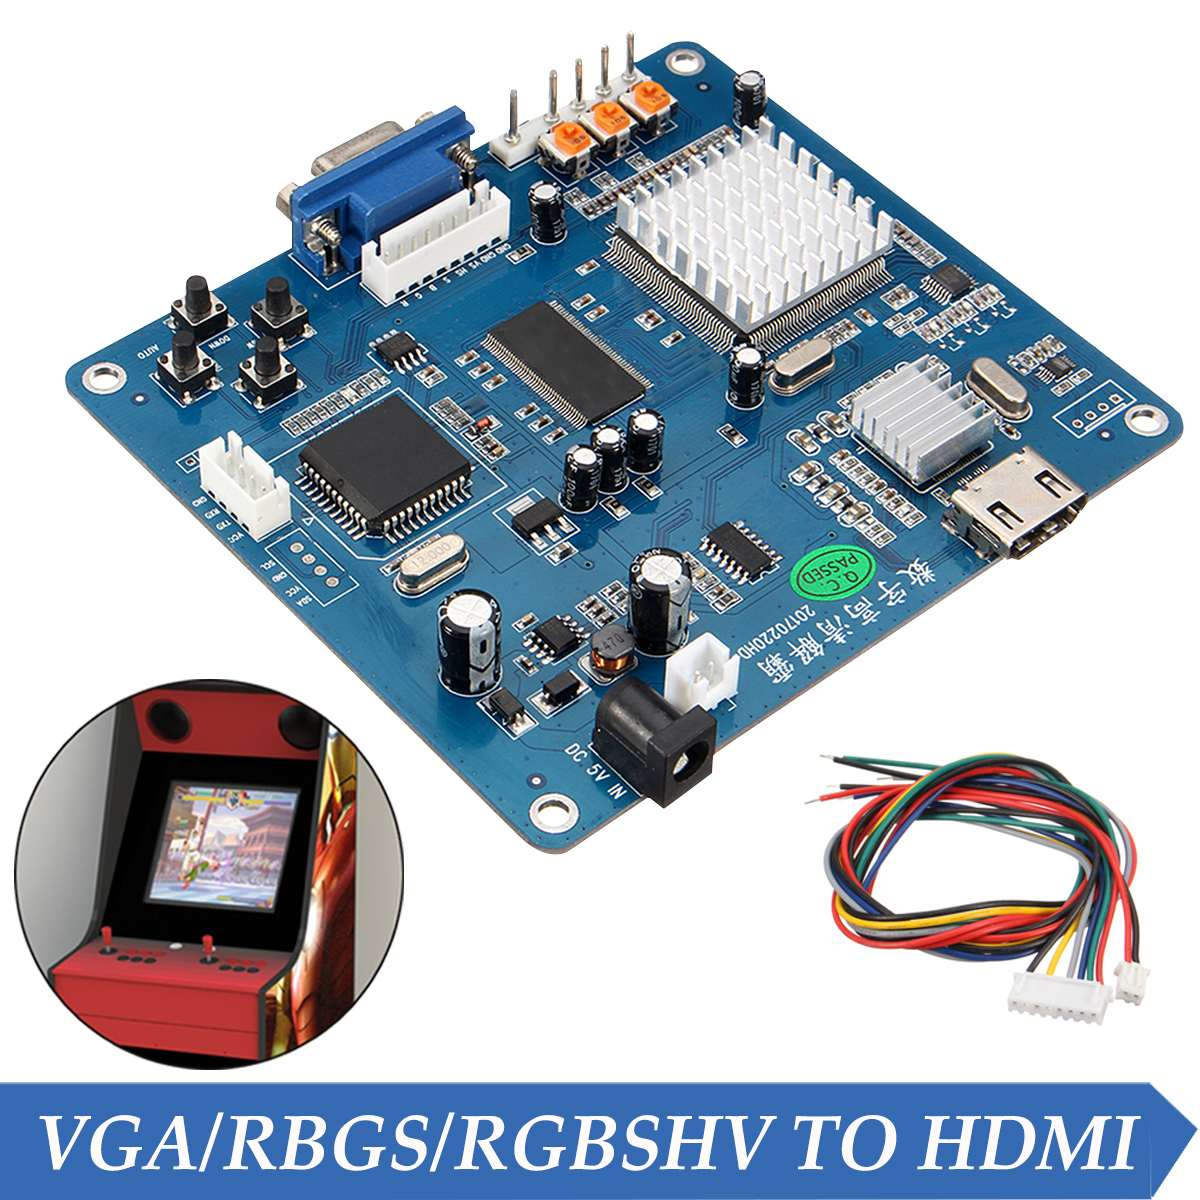 все цены на Arcade Game Video Output Converter Board VGA/RGB/CGA/EGA/YUV TO HDMI HD/Jamma Arcade Game Machine Video Output Converter Board онлайн